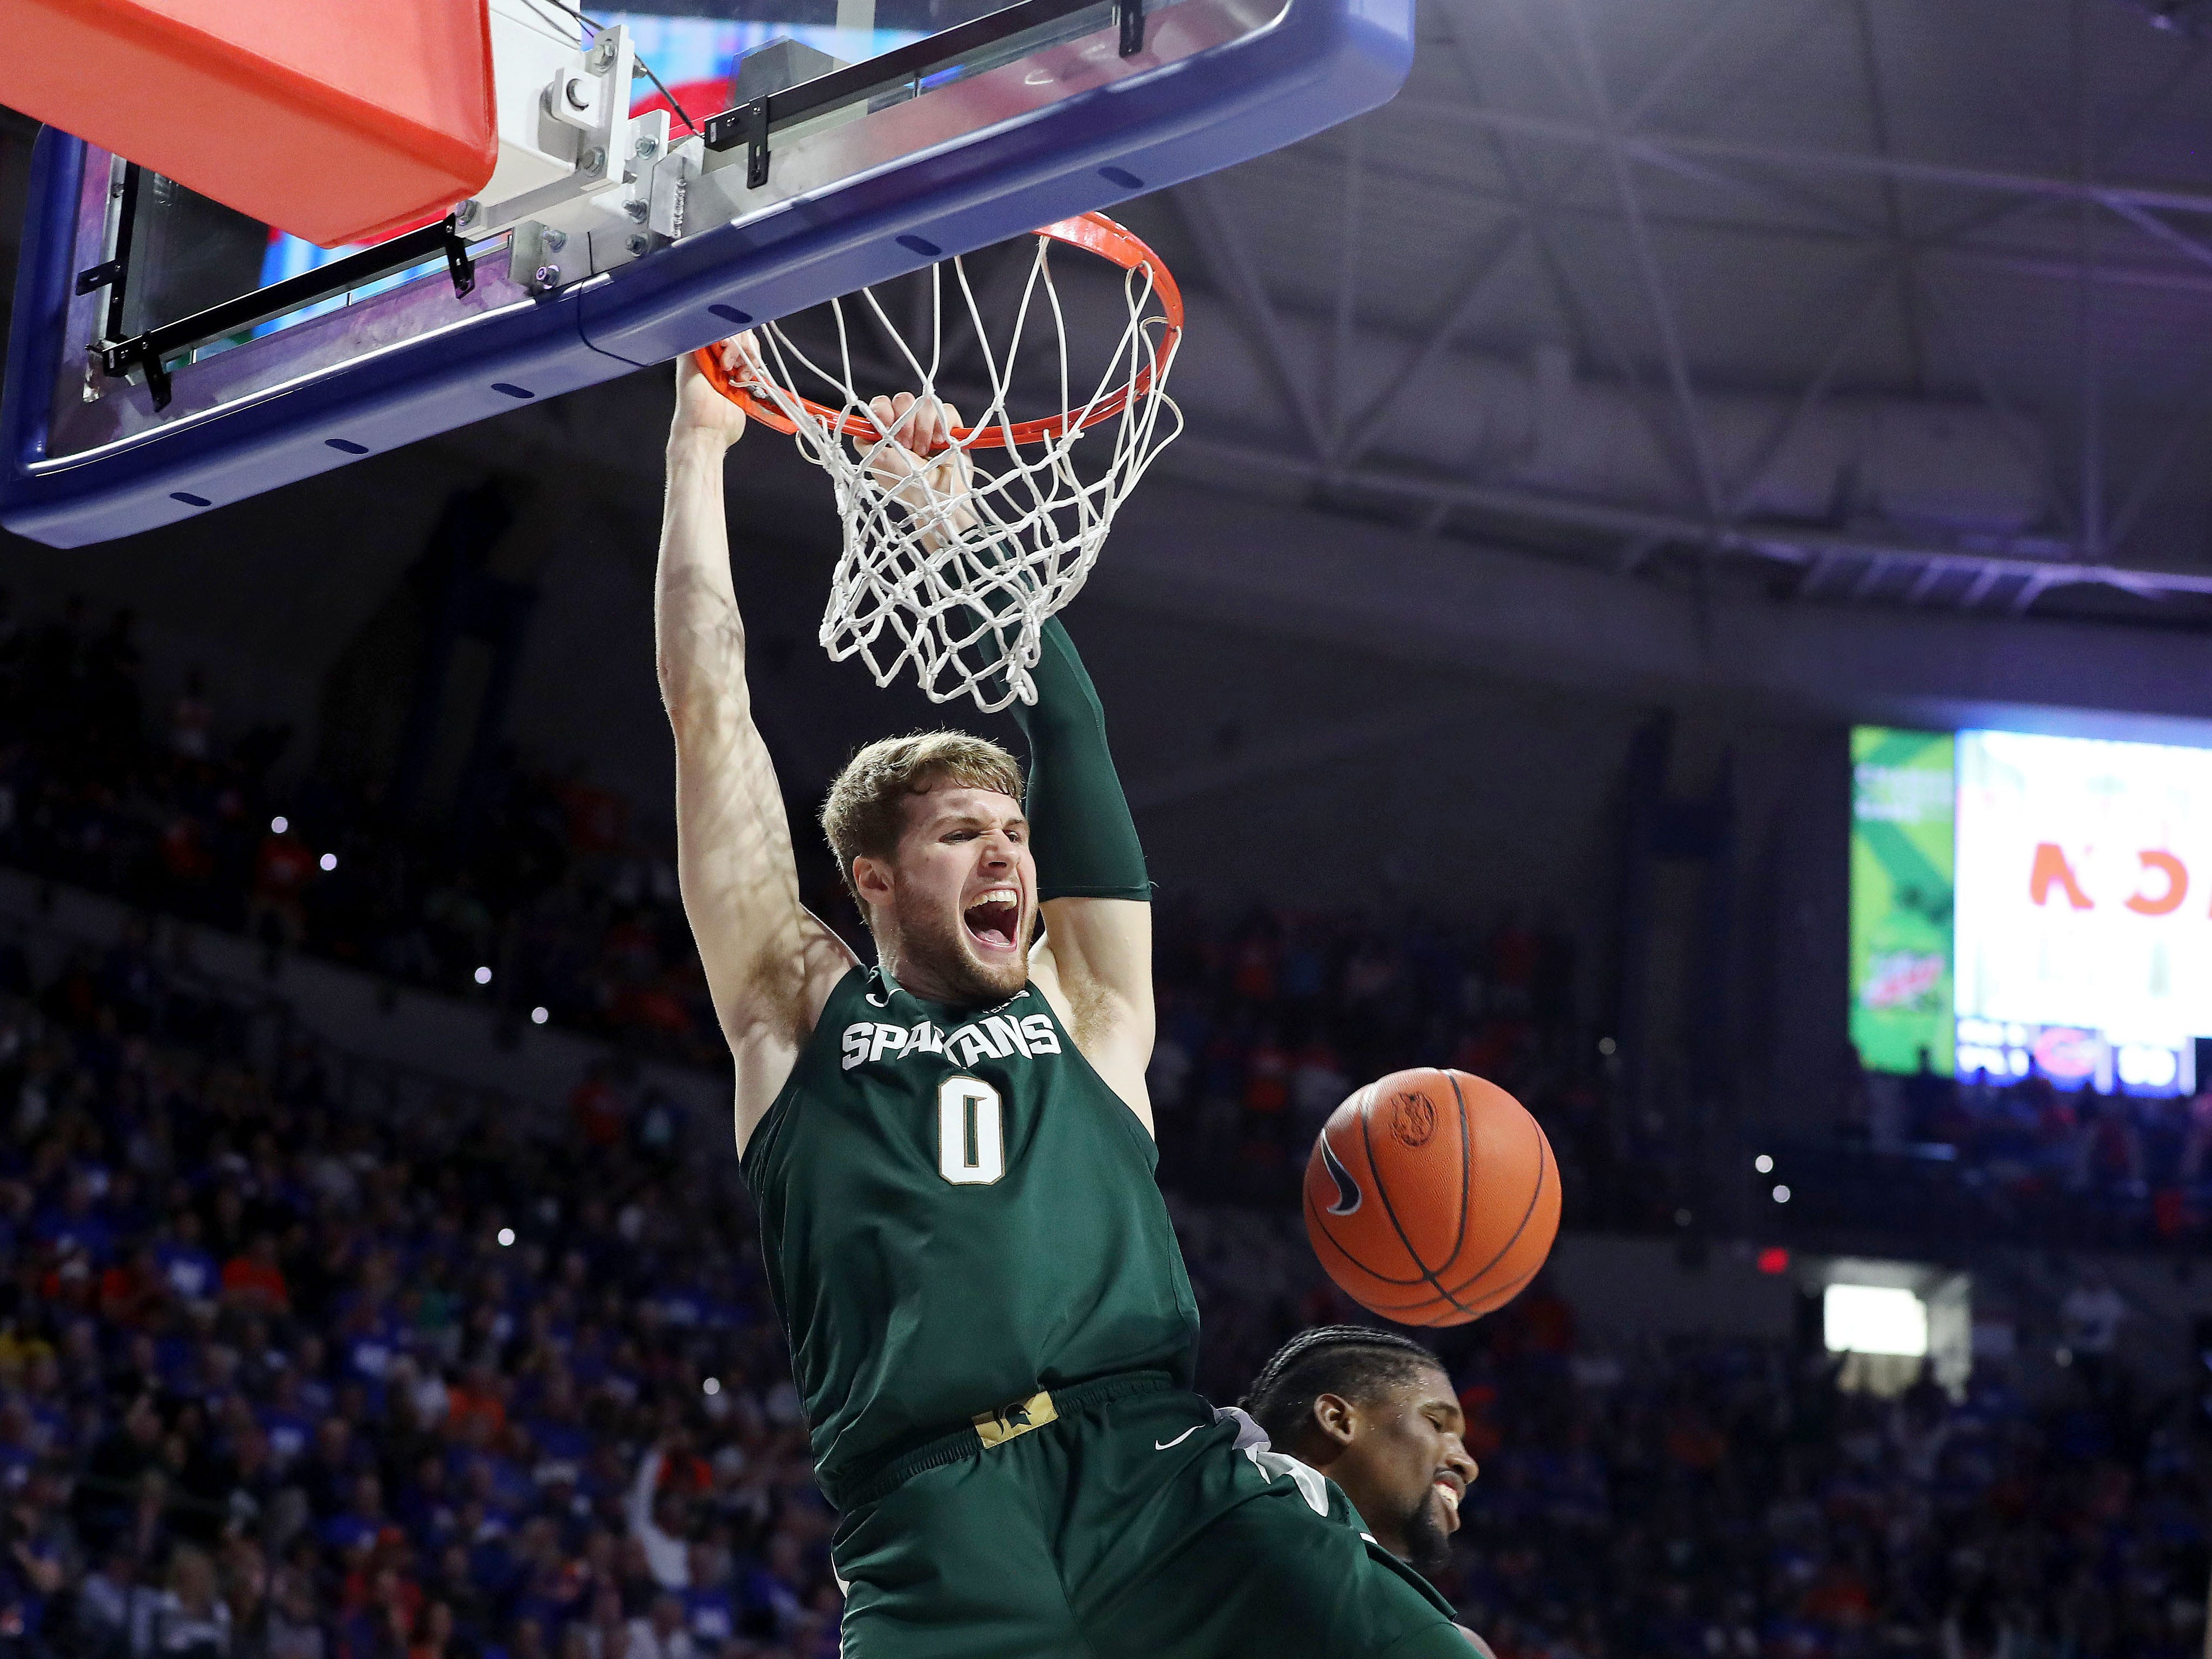 USA;Michigan State Spartans forward Kyle Ahrens (0) celebrates as he dunks against the Florida Gators during the second half at Exactech Arena.